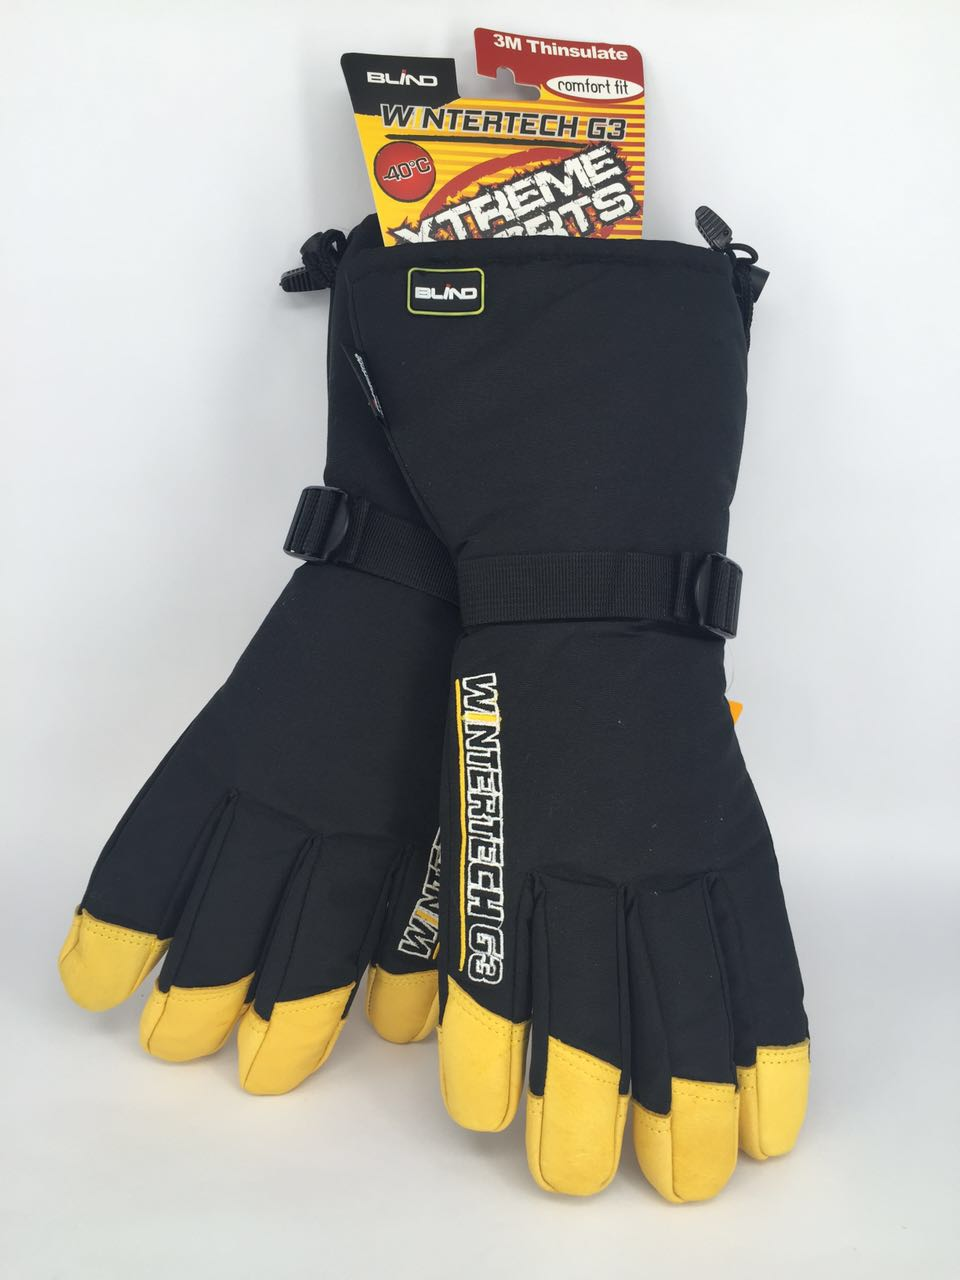 winder fishing glove  ice fishing glove deerskin glove